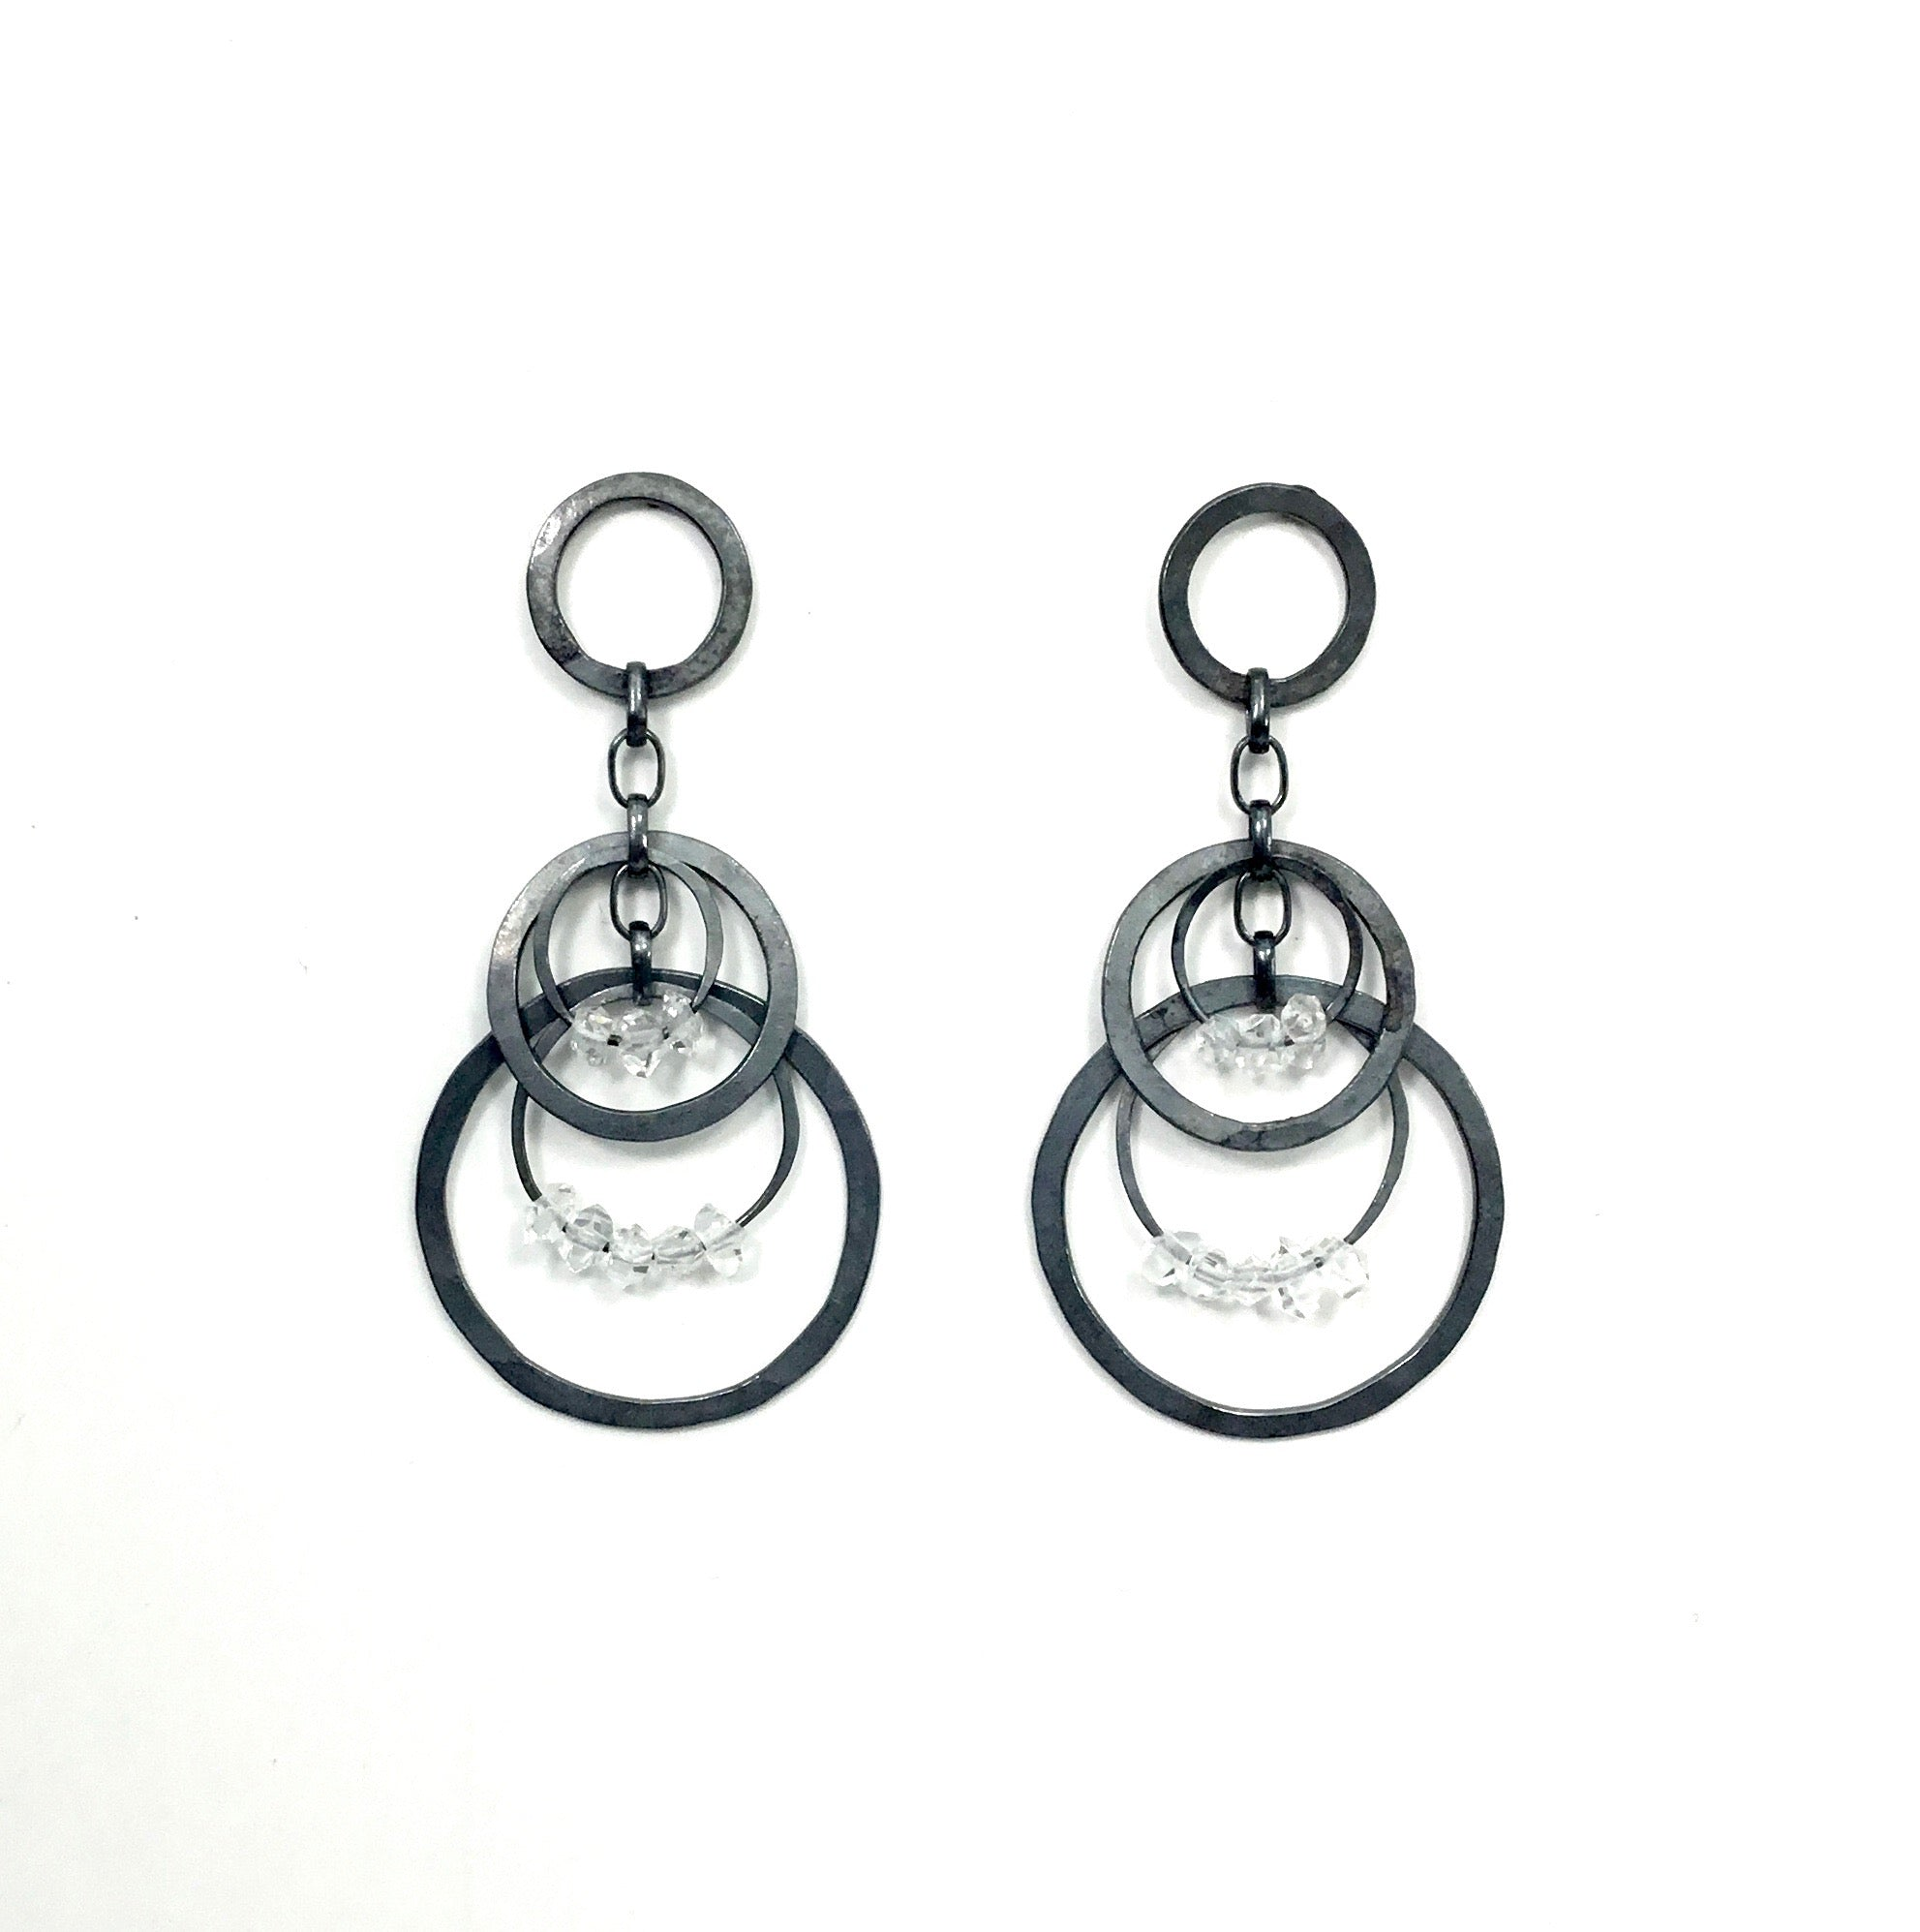 Heather Guidero Circle Bunch Herkimer Earrings